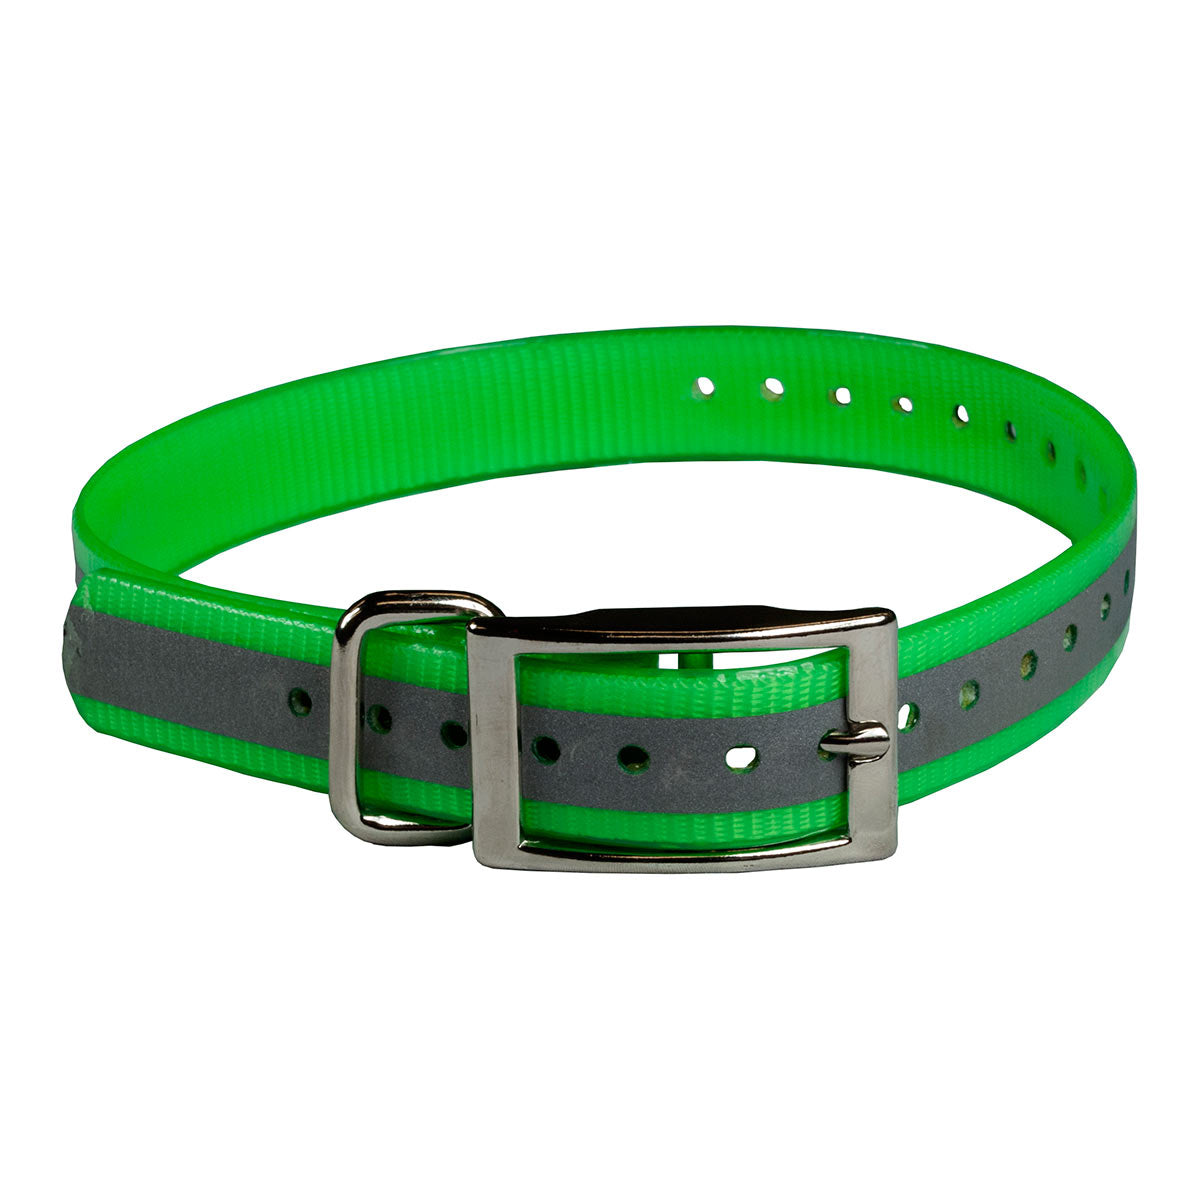 "The Buzzard's Roost Reflective Collar Strap 1"" Green 1"" x 24"" - ViTaiLity Pet Supply"